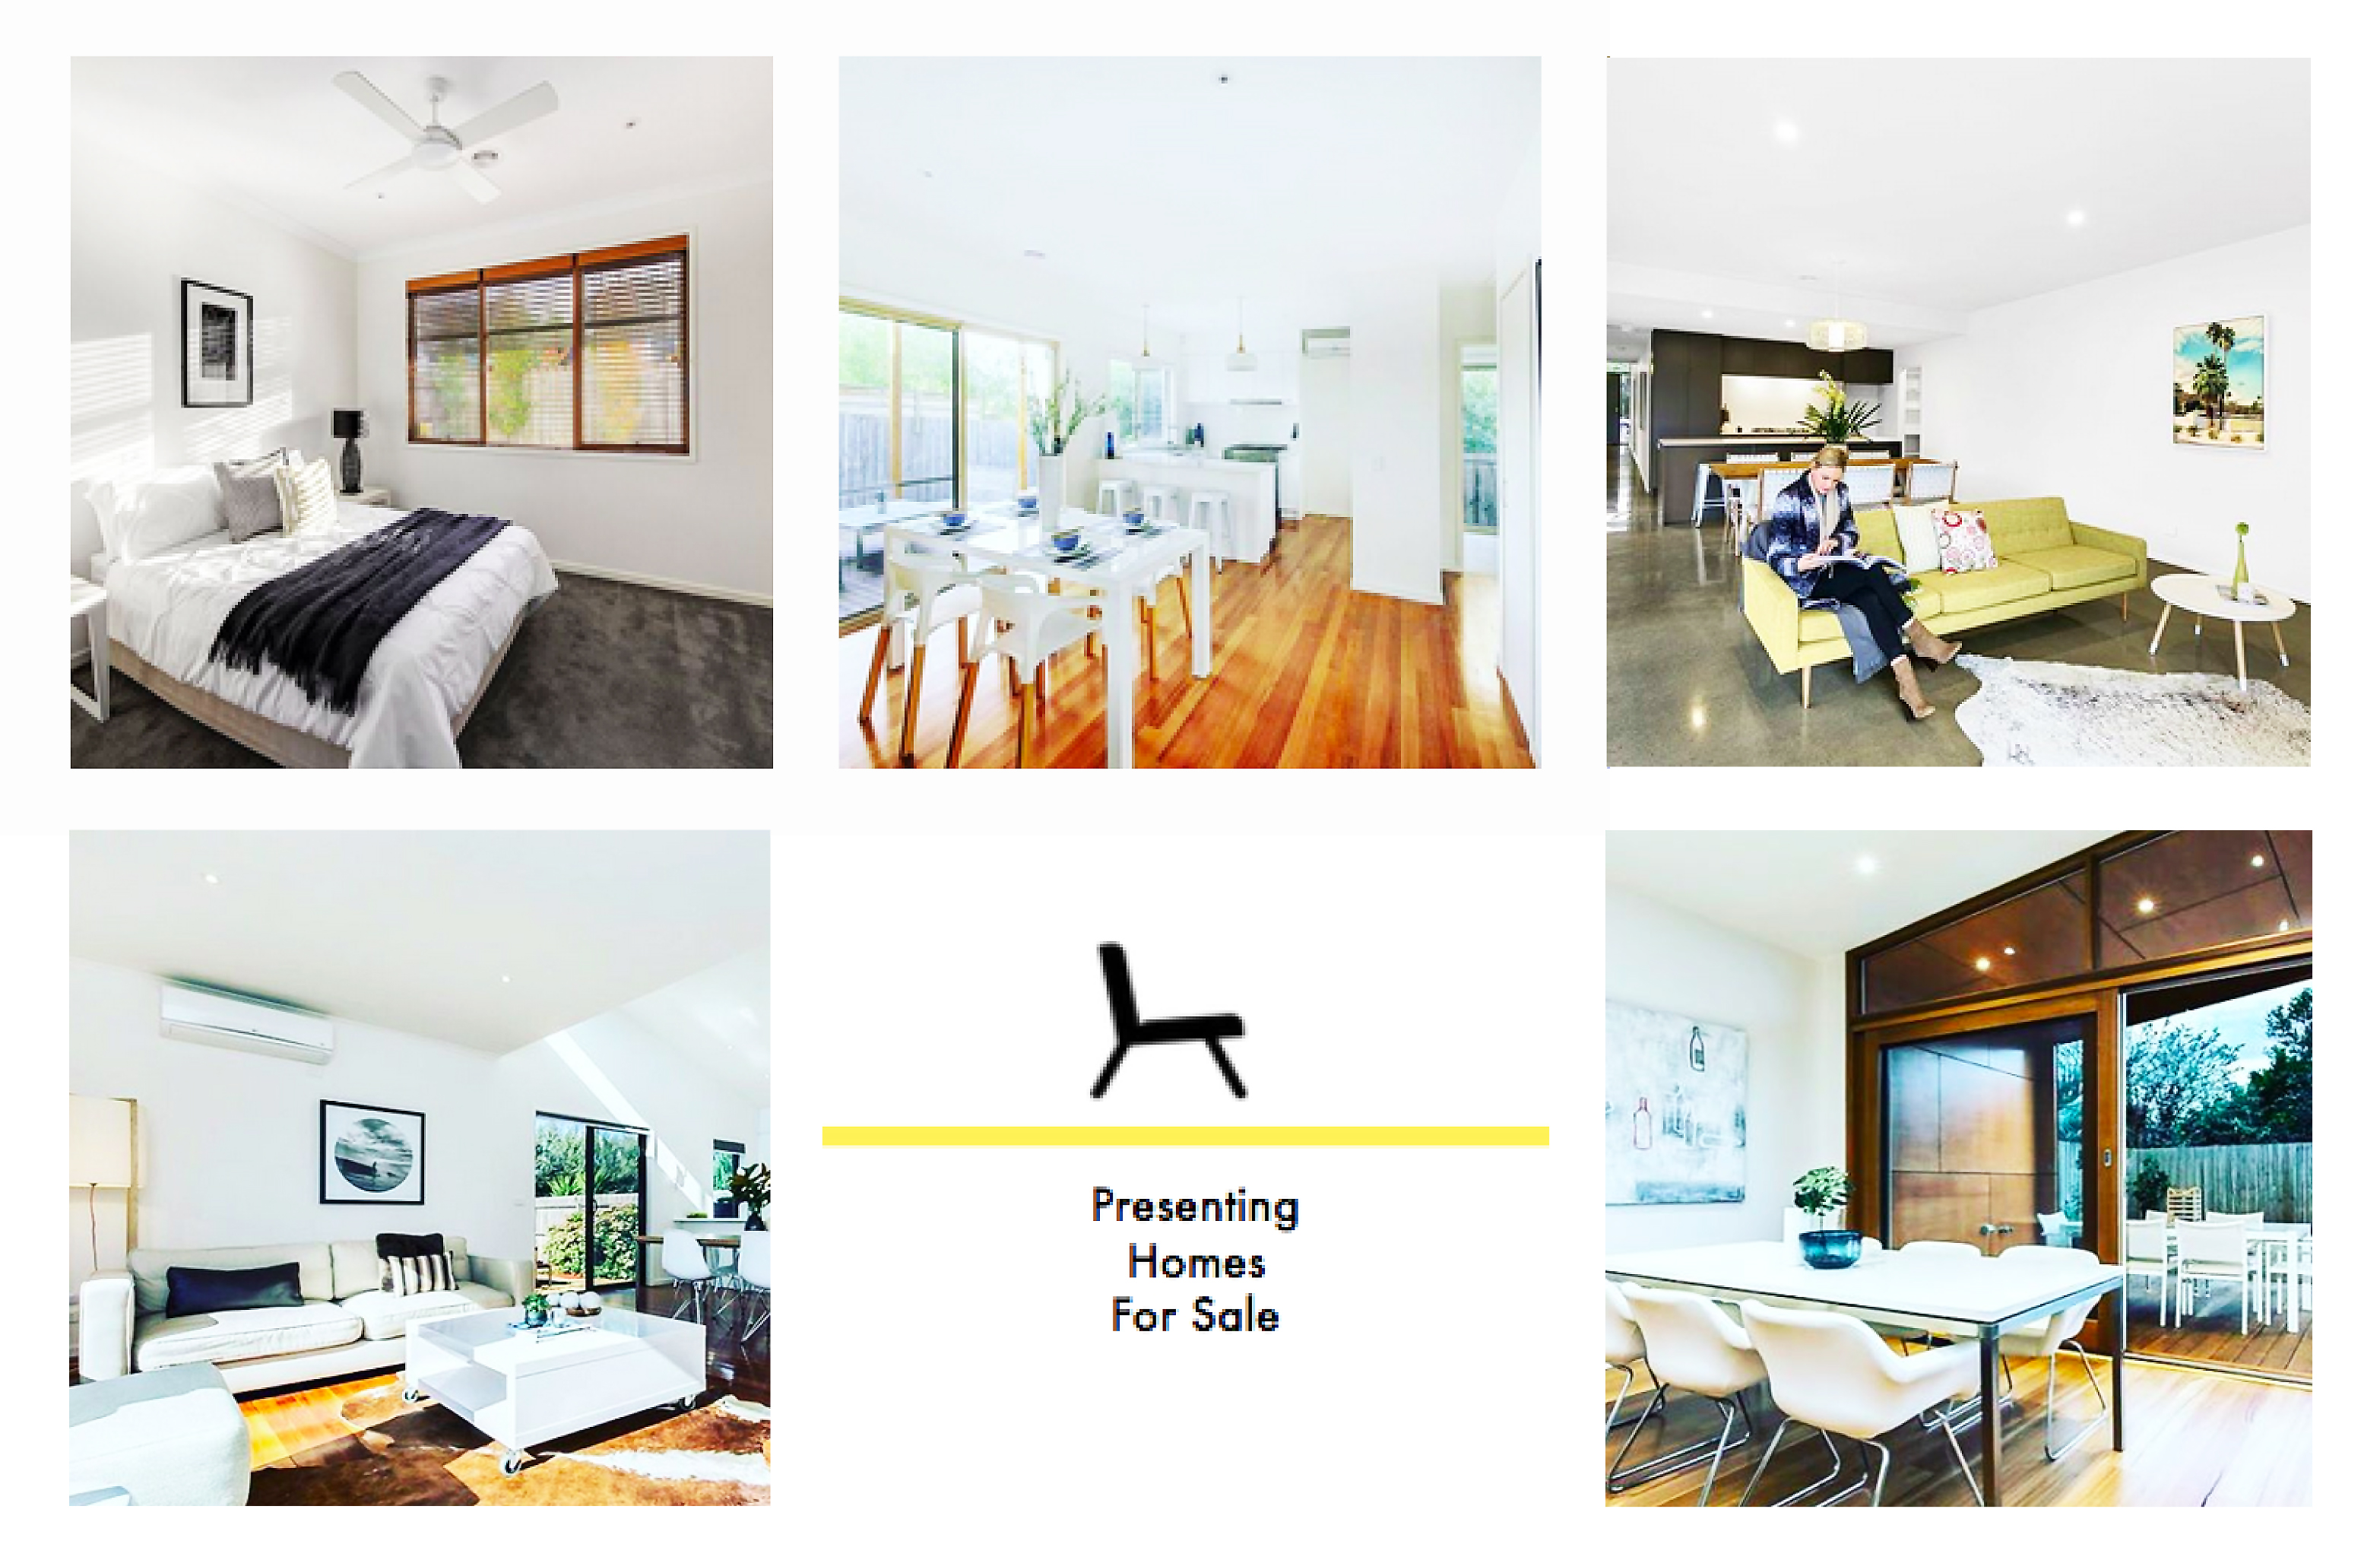 LINKS Property, Surf Coast, Real Estate, Presenting Homes For sale, Property styling, for sale, open home, open inspection